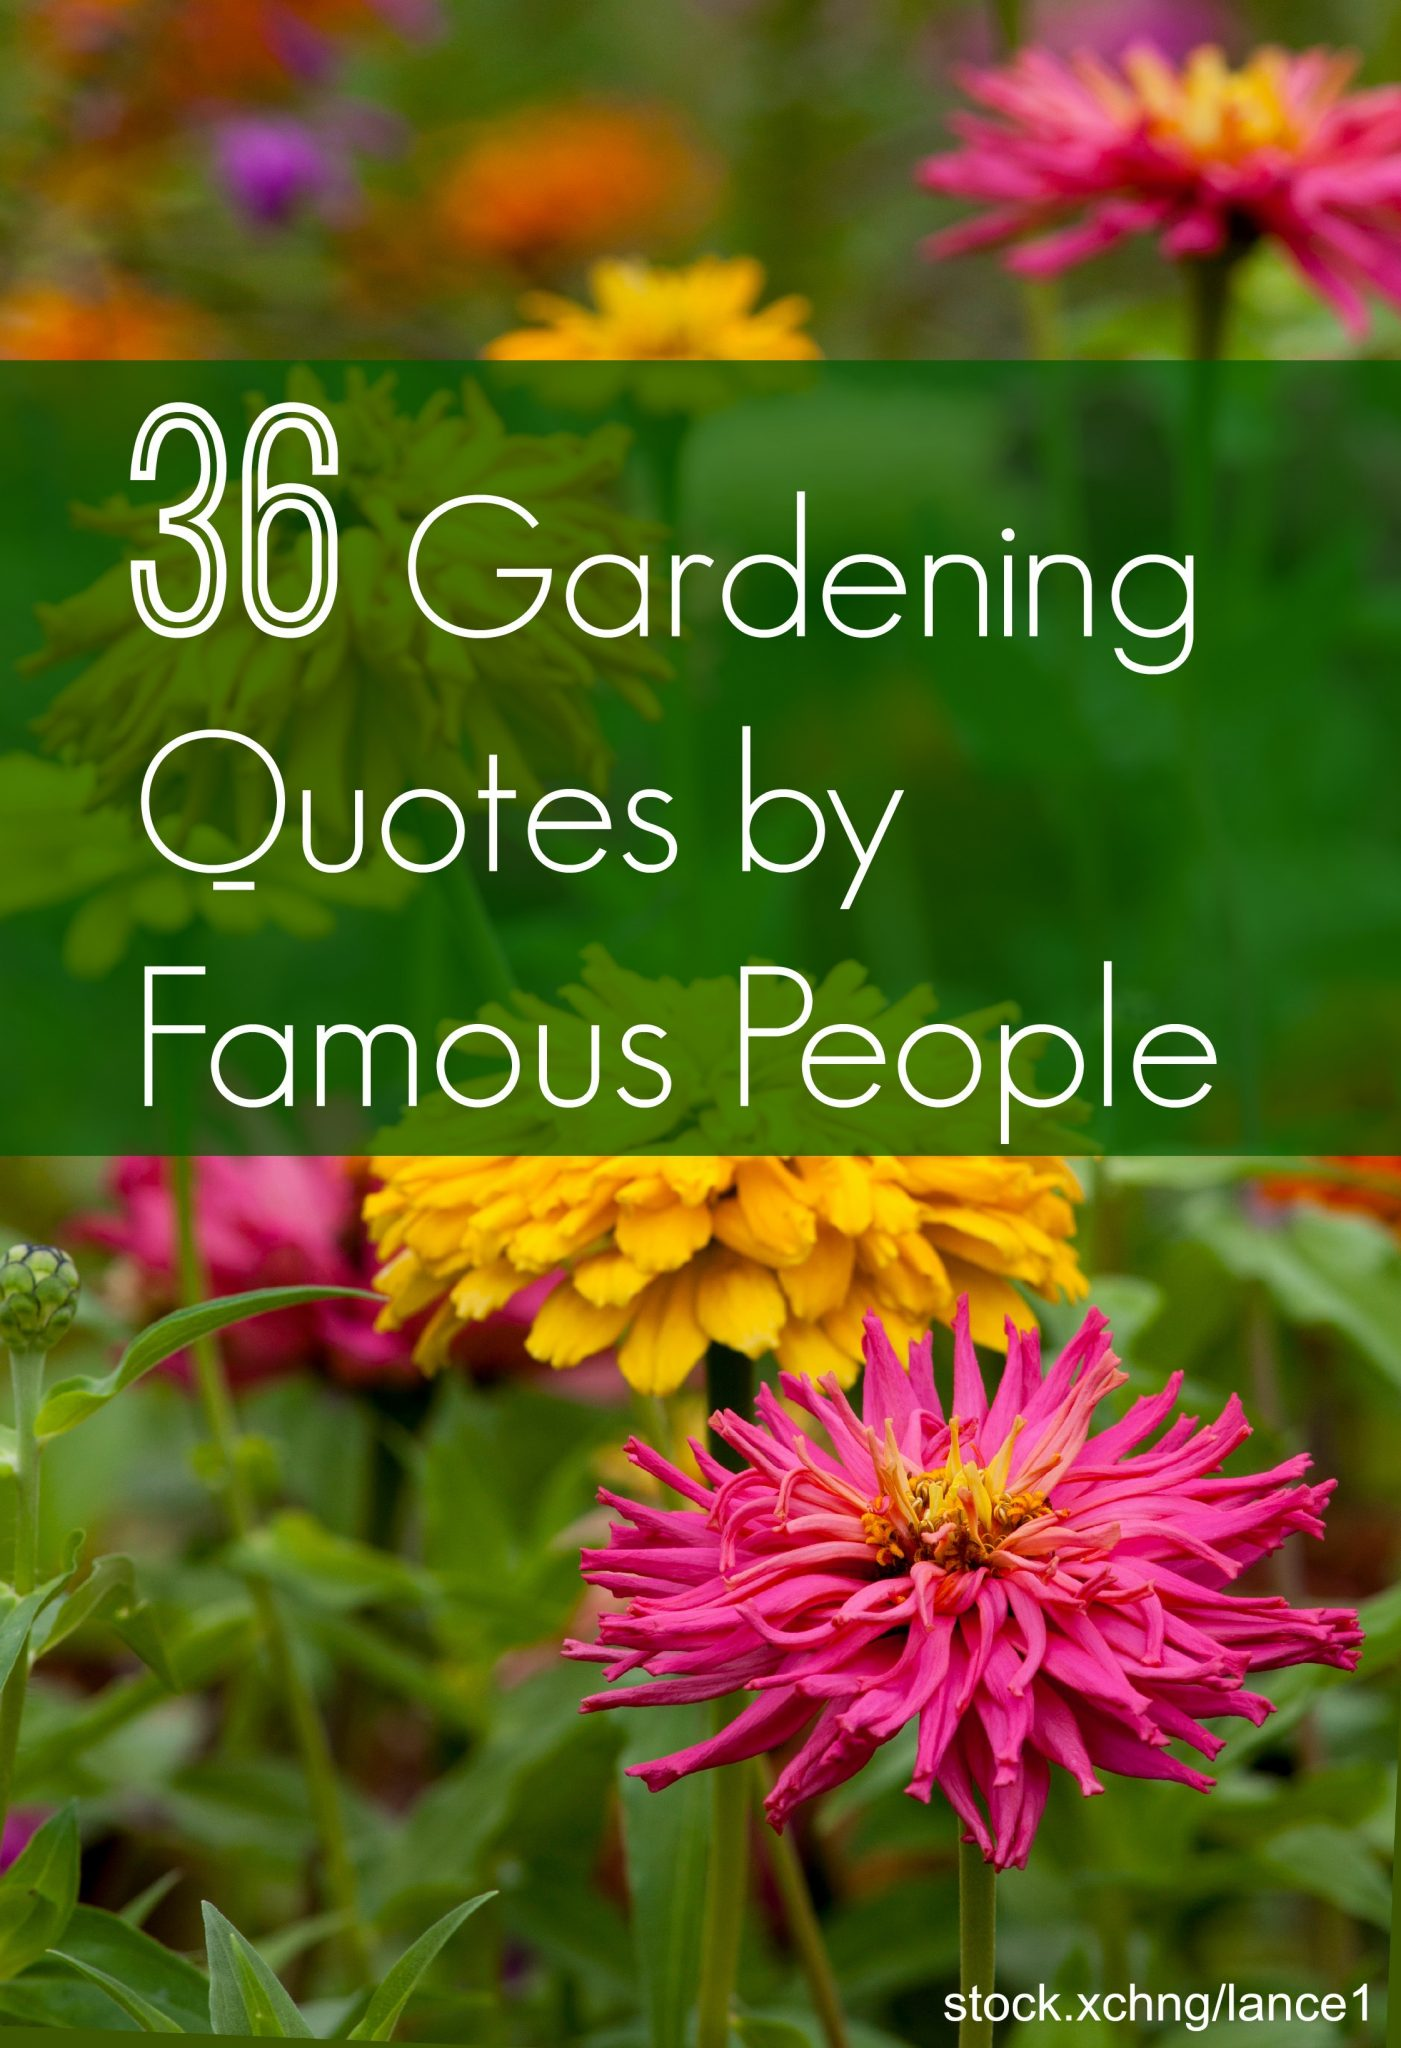 Garden Quotes Best Gardening Quotes by Famous People